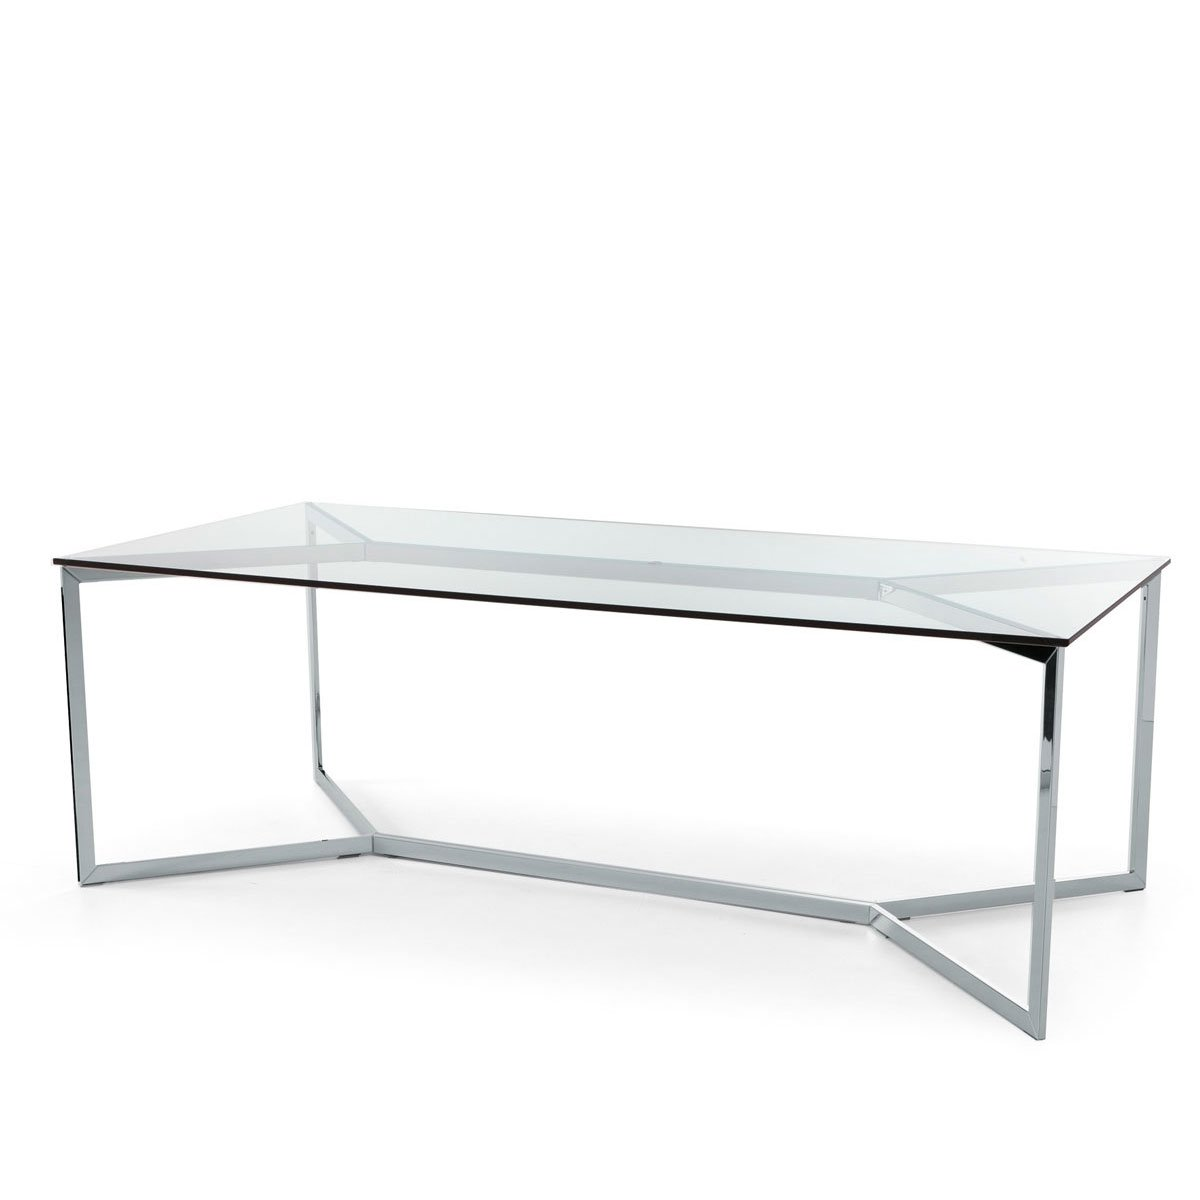 Carlomagno Glass And Metal Table By Gallotti Radice Klarity Glass Furniture